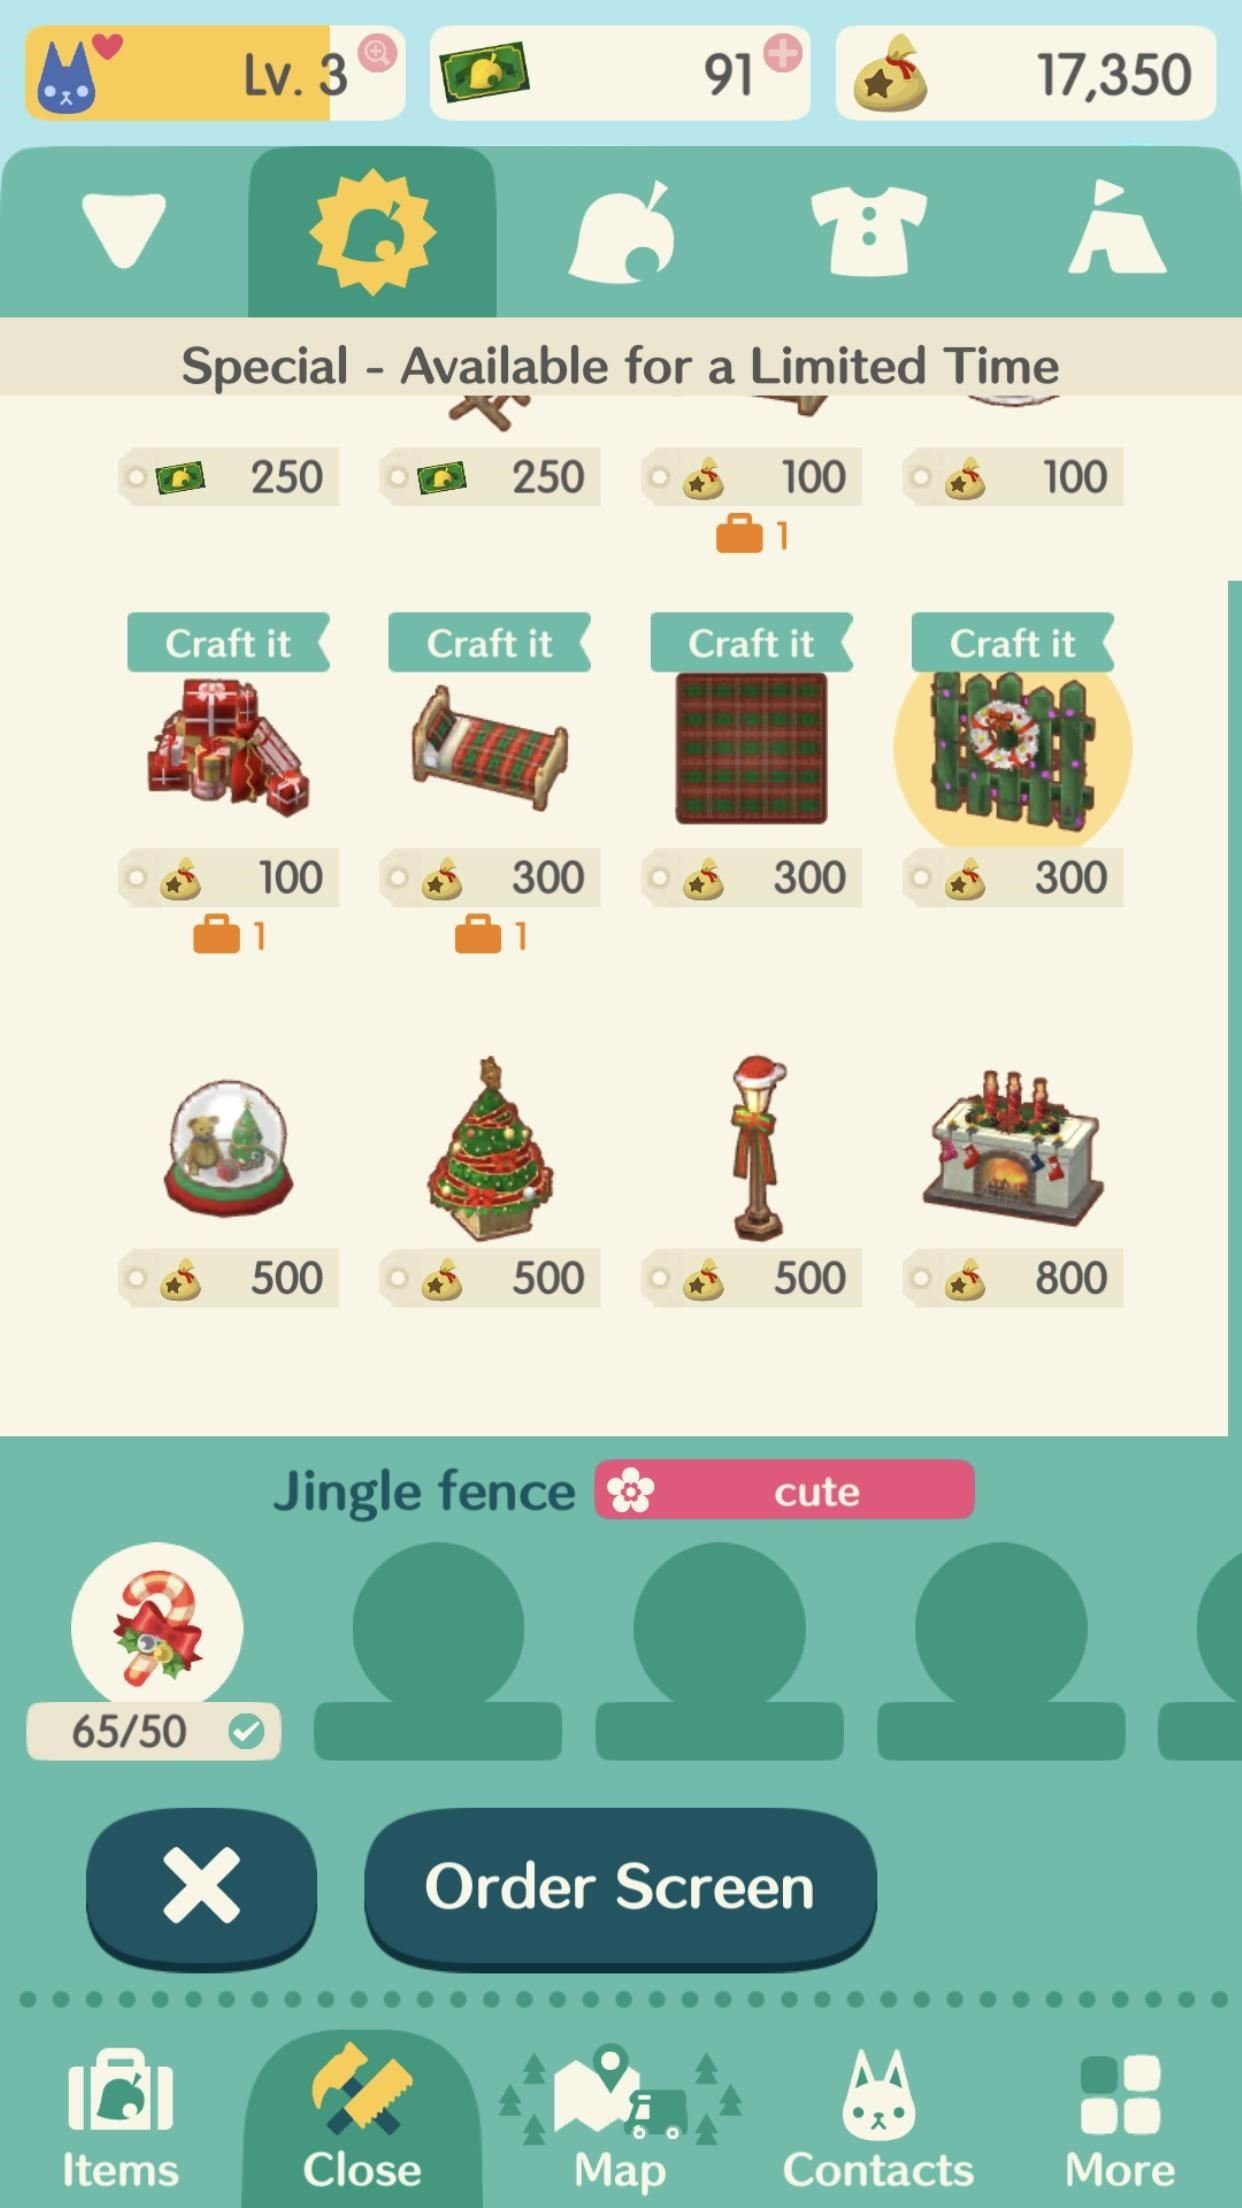 Pocket Camp 101: Grab Yourself a Full Santa Suit & Other Holiday Items in Animal Crossing